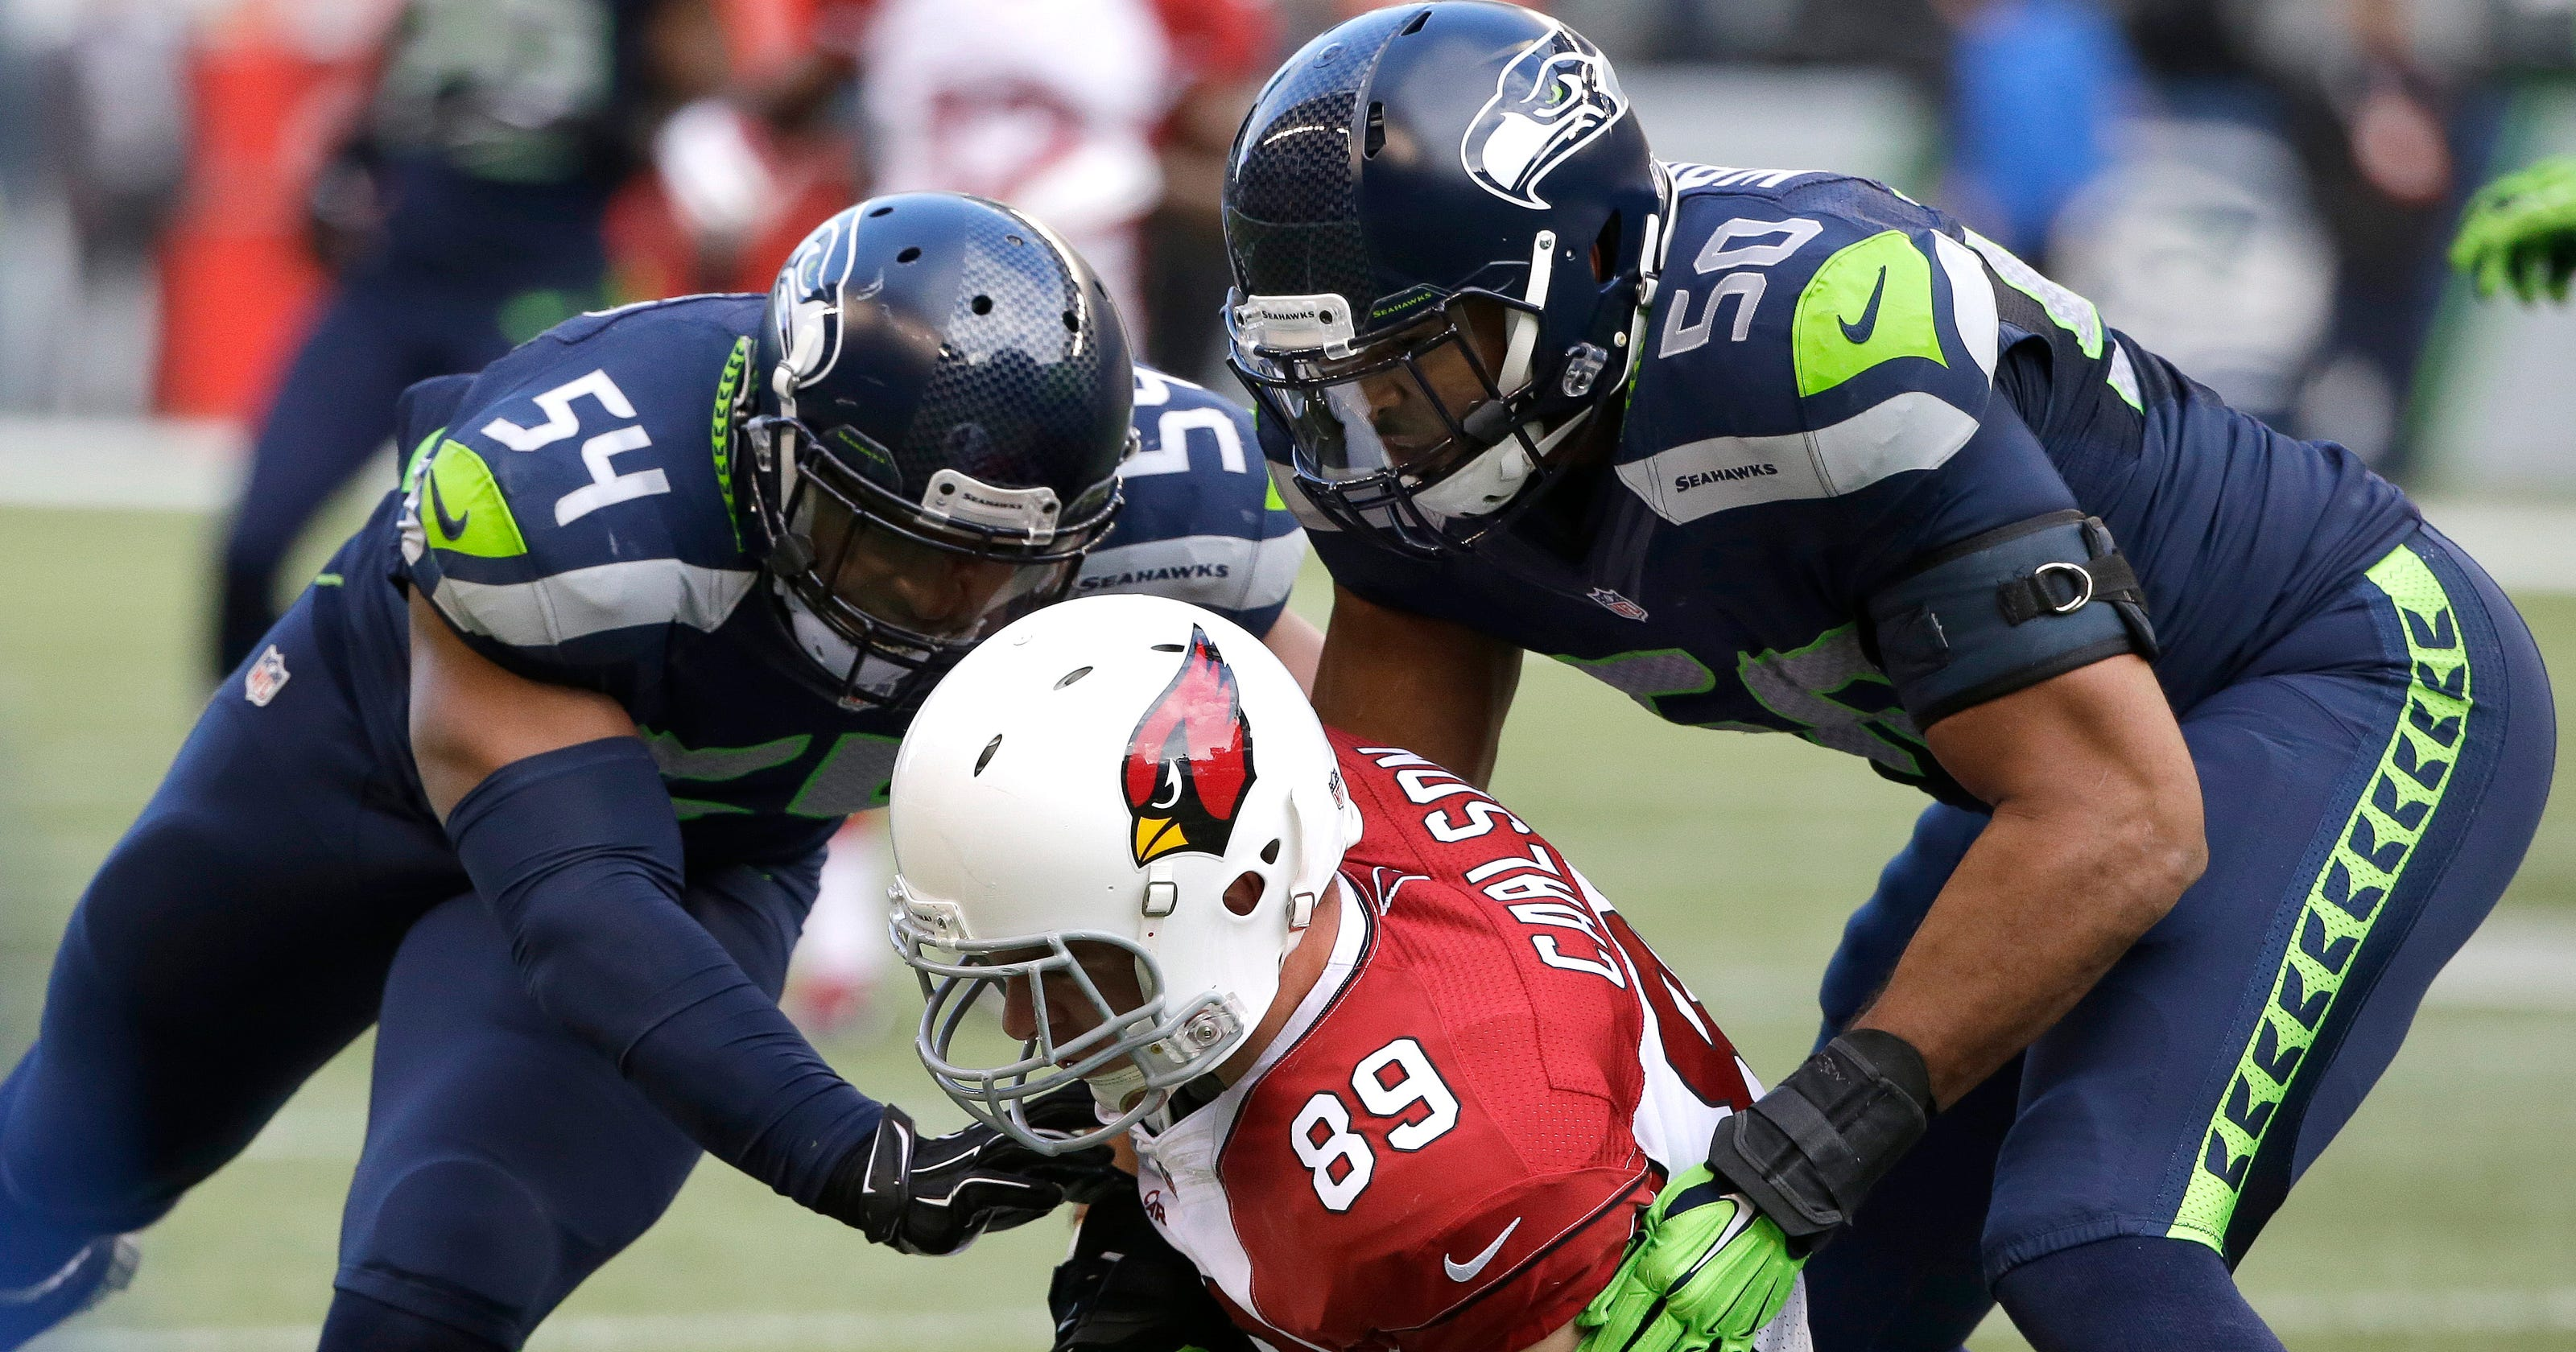 950b242d289 Five Super Bowl keys to victories for Seahawks